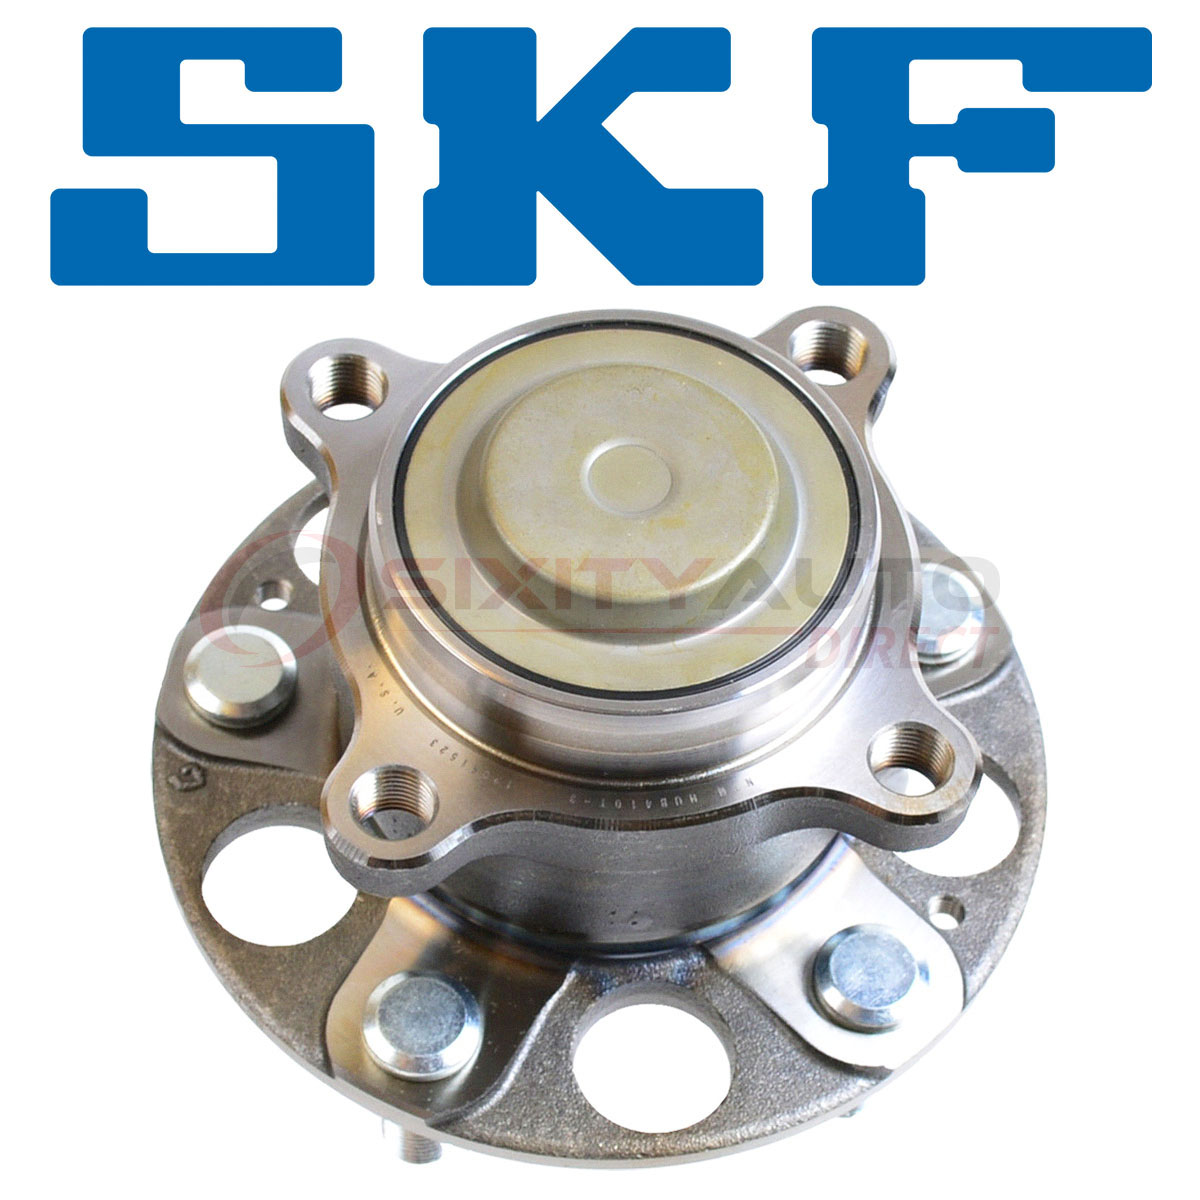 SKF Wheel Bearing & Hub Assembly For 2015-2017 Acura TLX 2